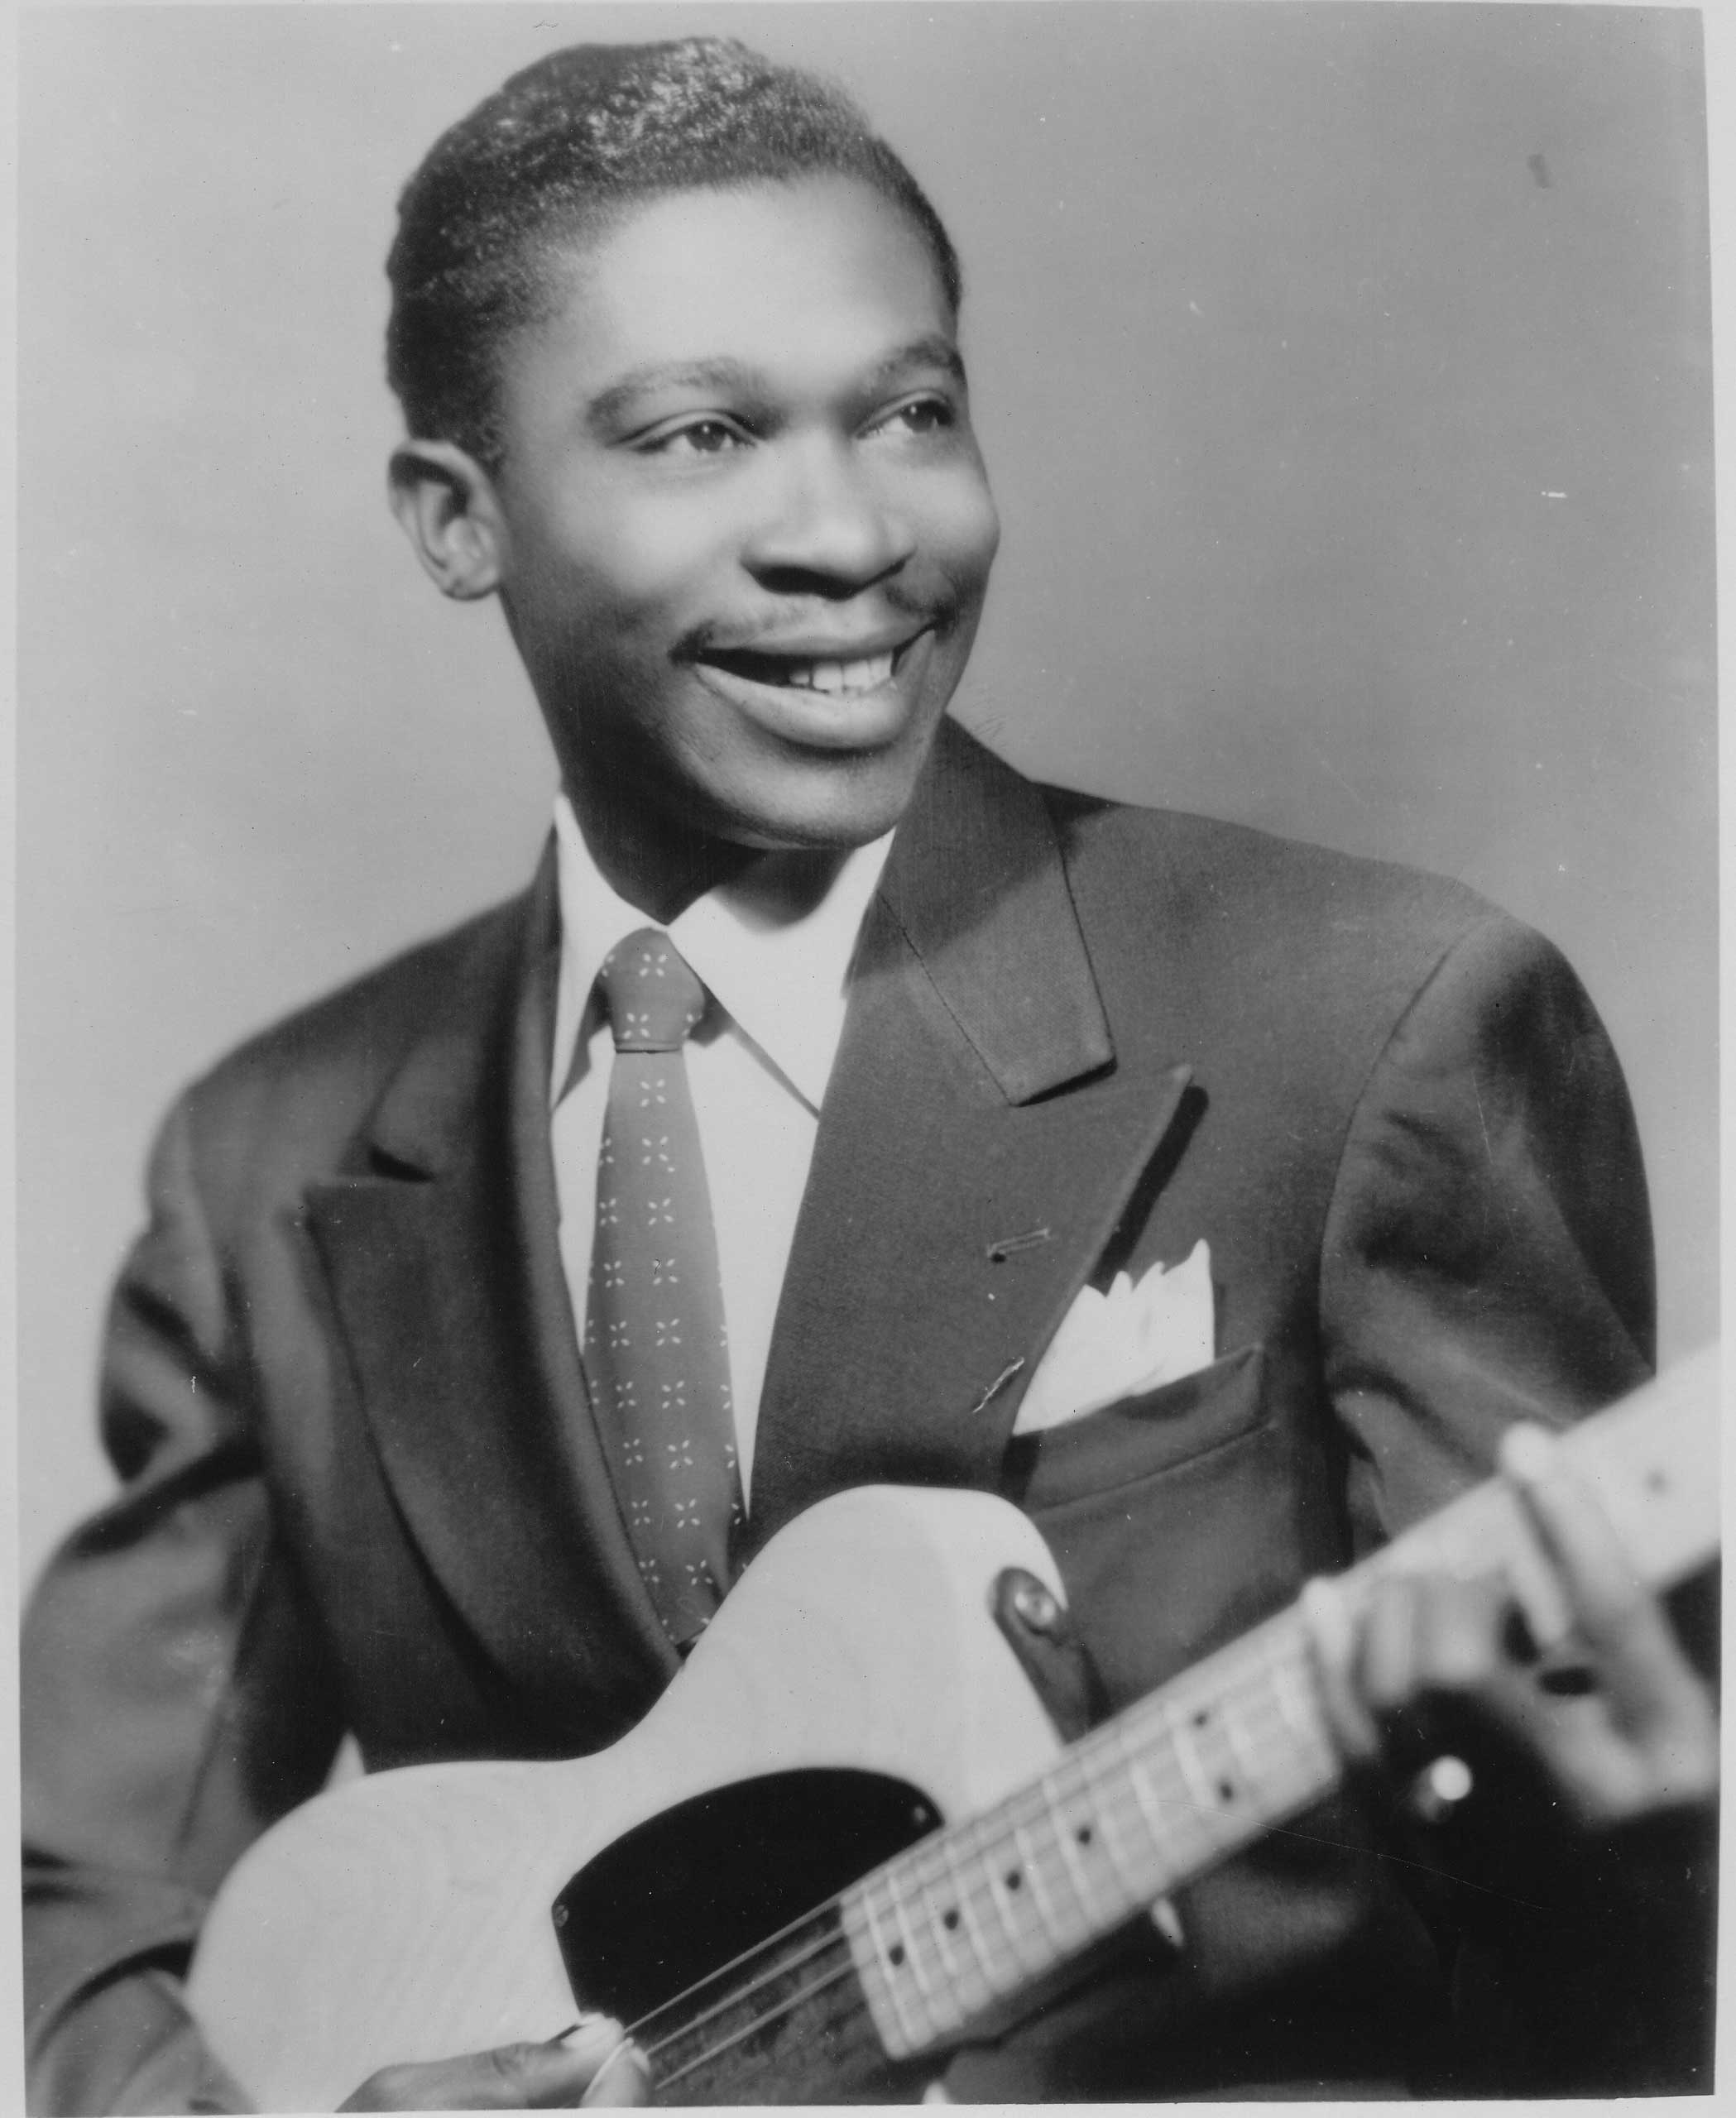 B.B. King poses for a portrait in 1950.